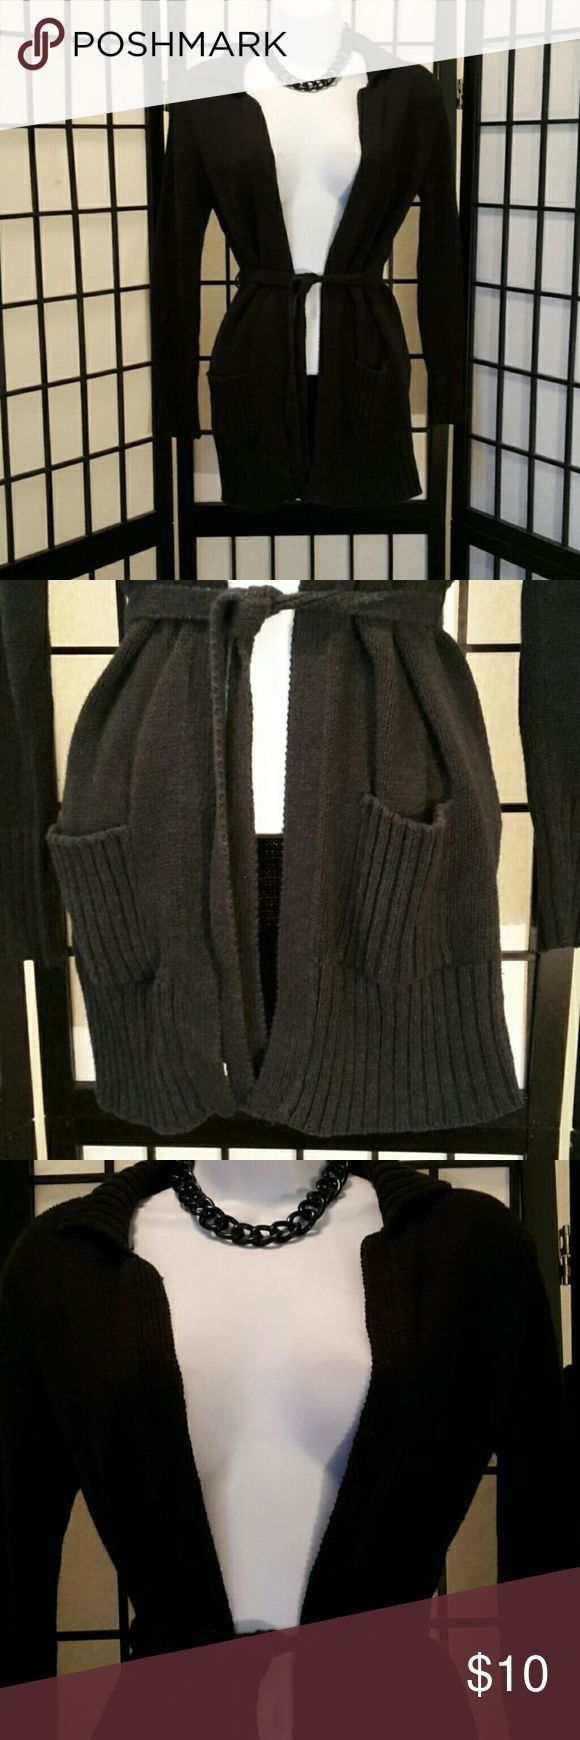 No Boundaries Black Open Sweater Good Condition, no tear, holes or stain, shows wear, 2 Front Pockets, Tie Waist, Long Sleeve, Ribbed Collar & Hem, Accessories not included. Sweaters